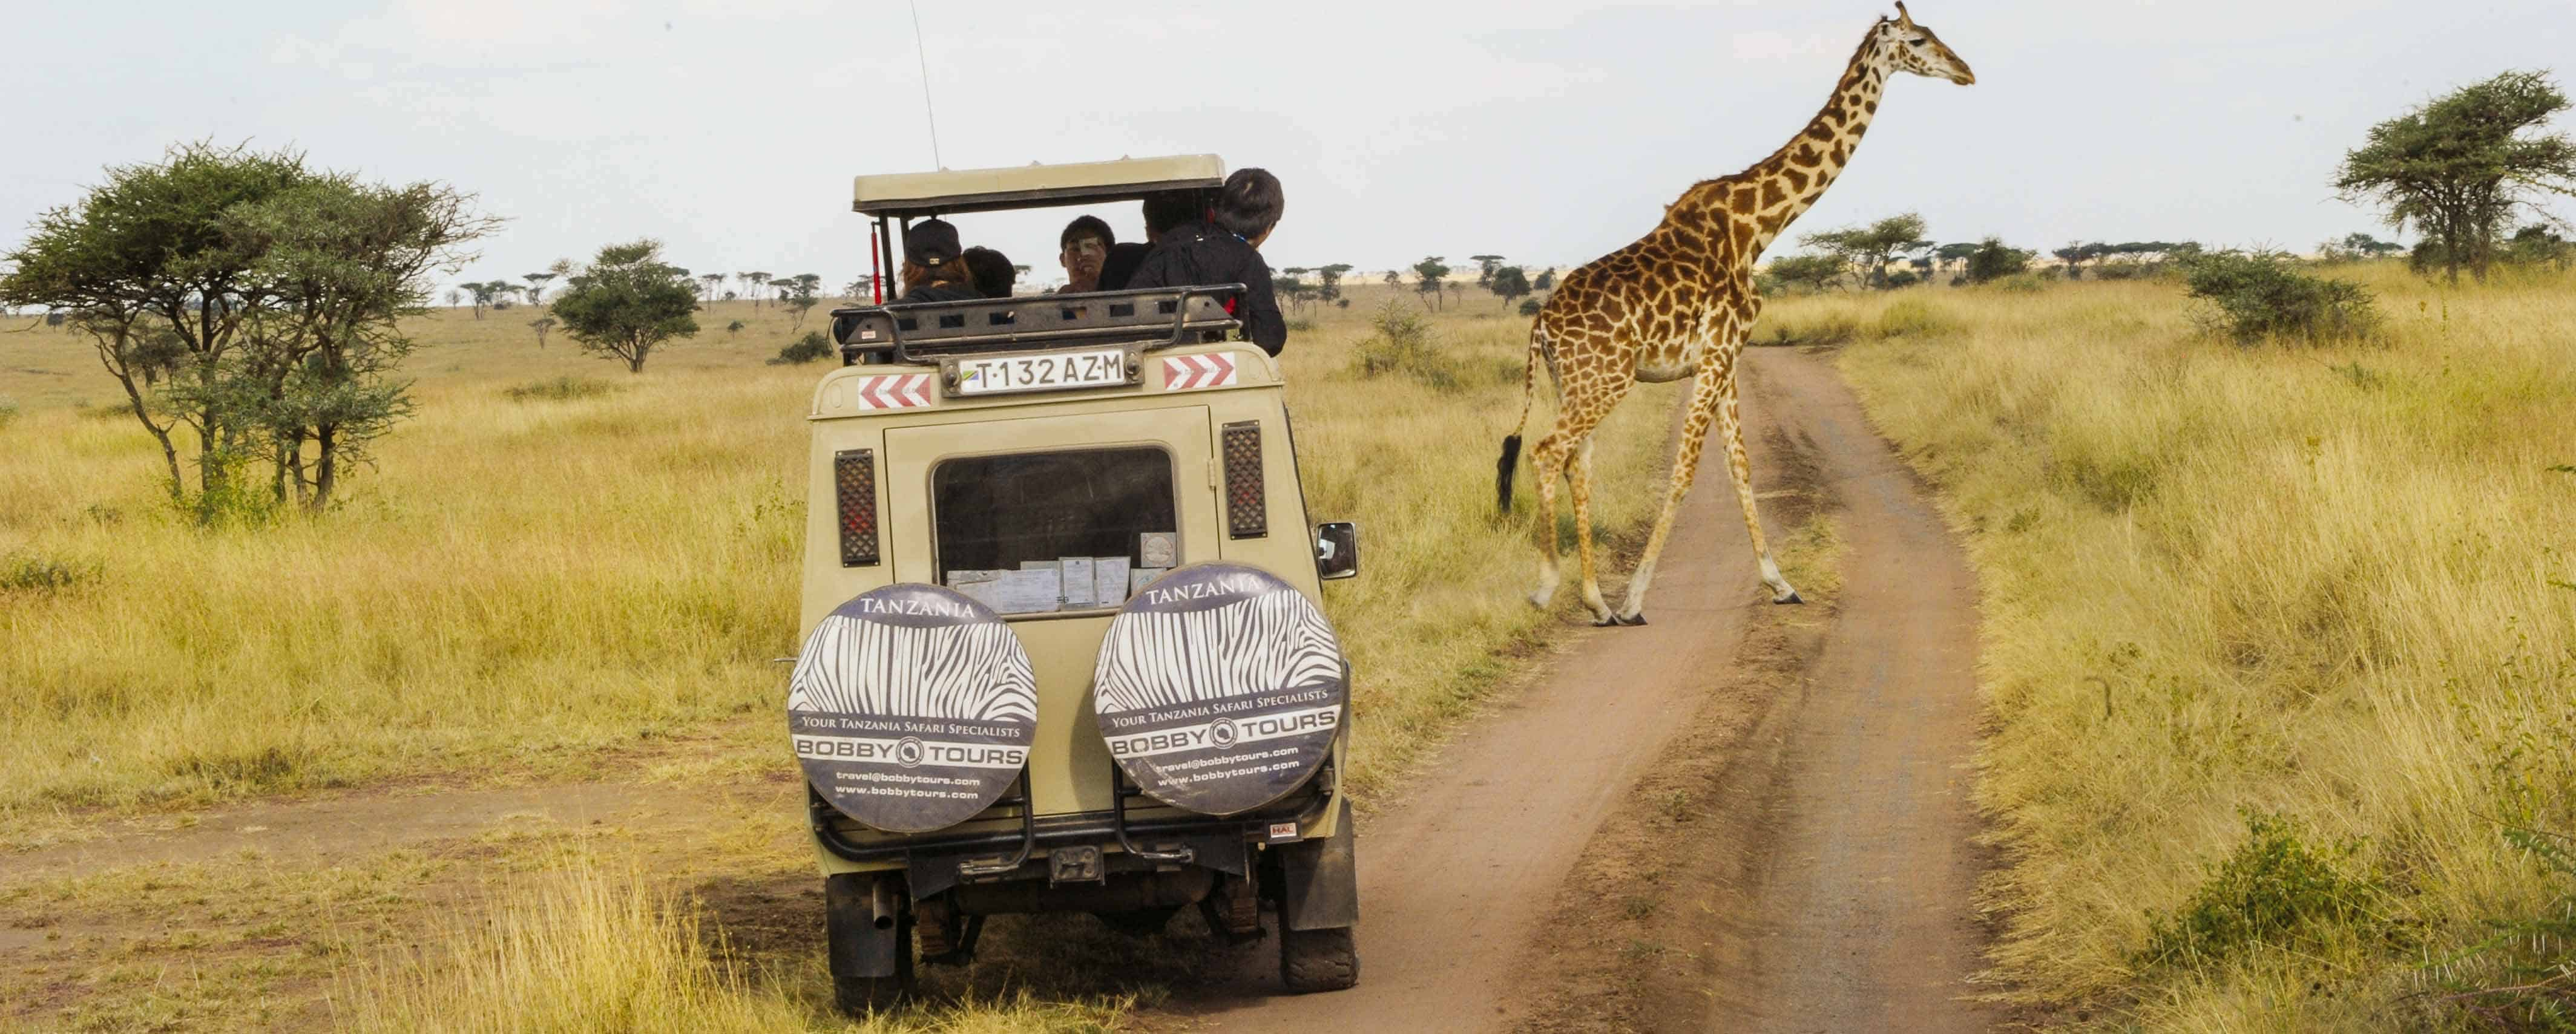 Safari Vehicle Bobby Tours Tanzania